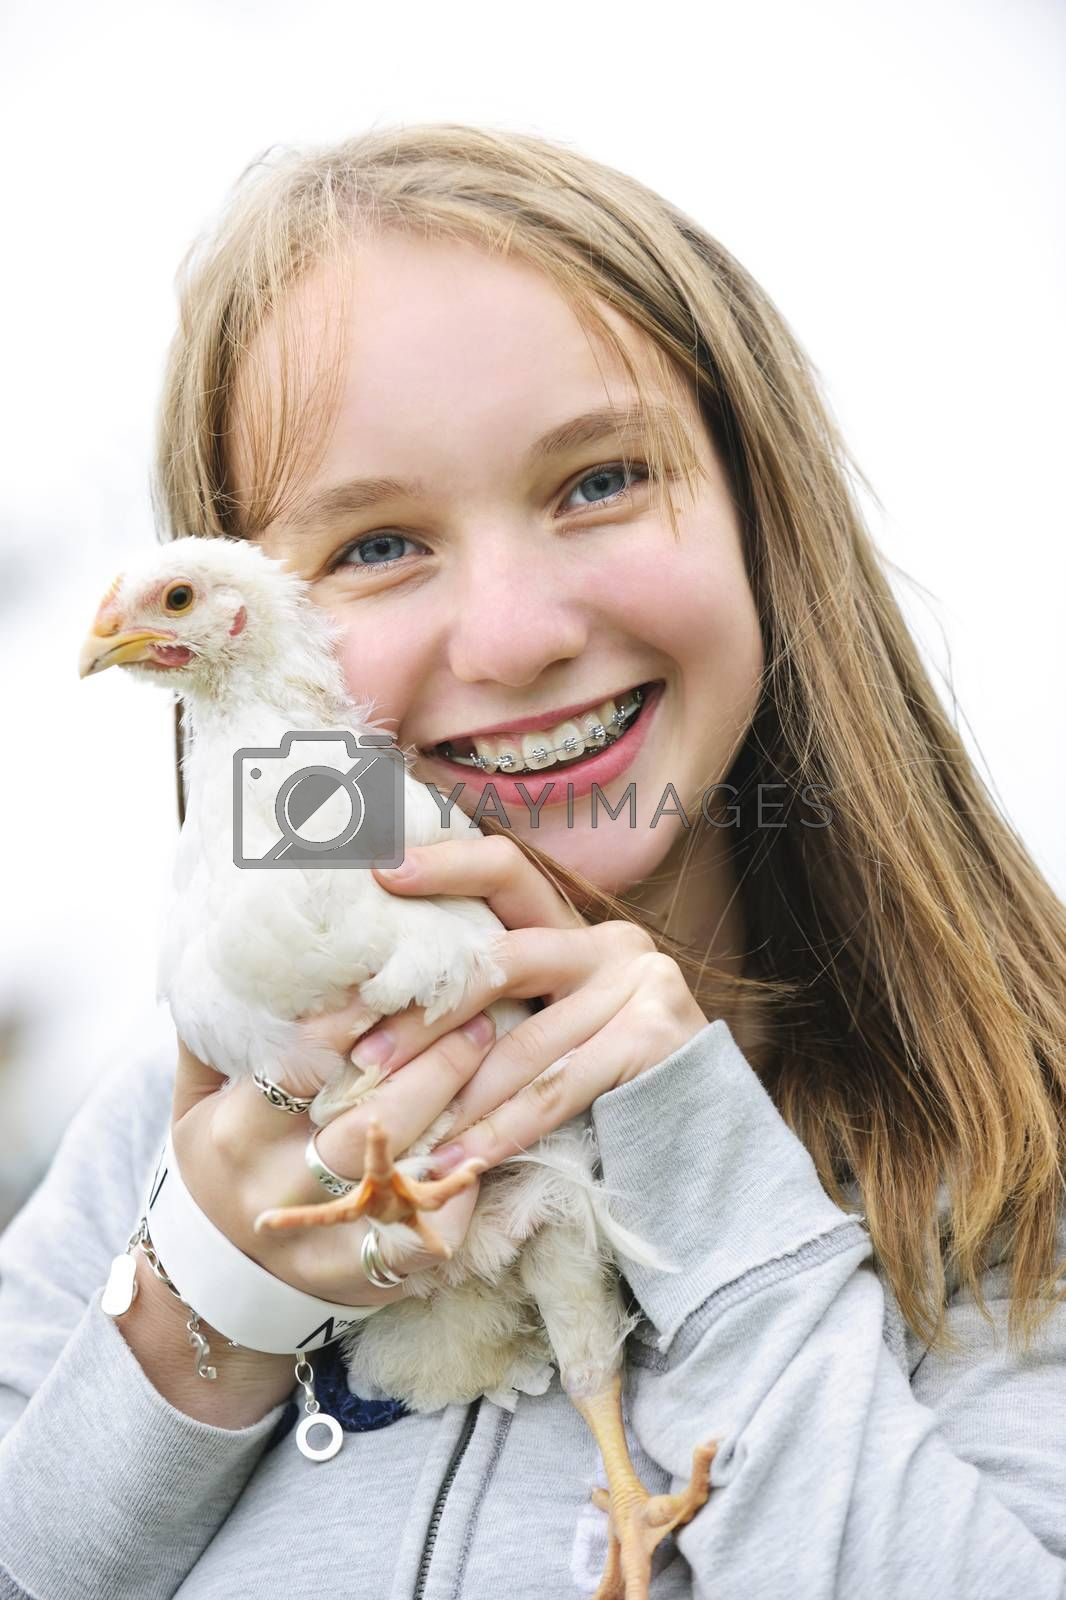 Smiling teenage girl with braces holding young chicken